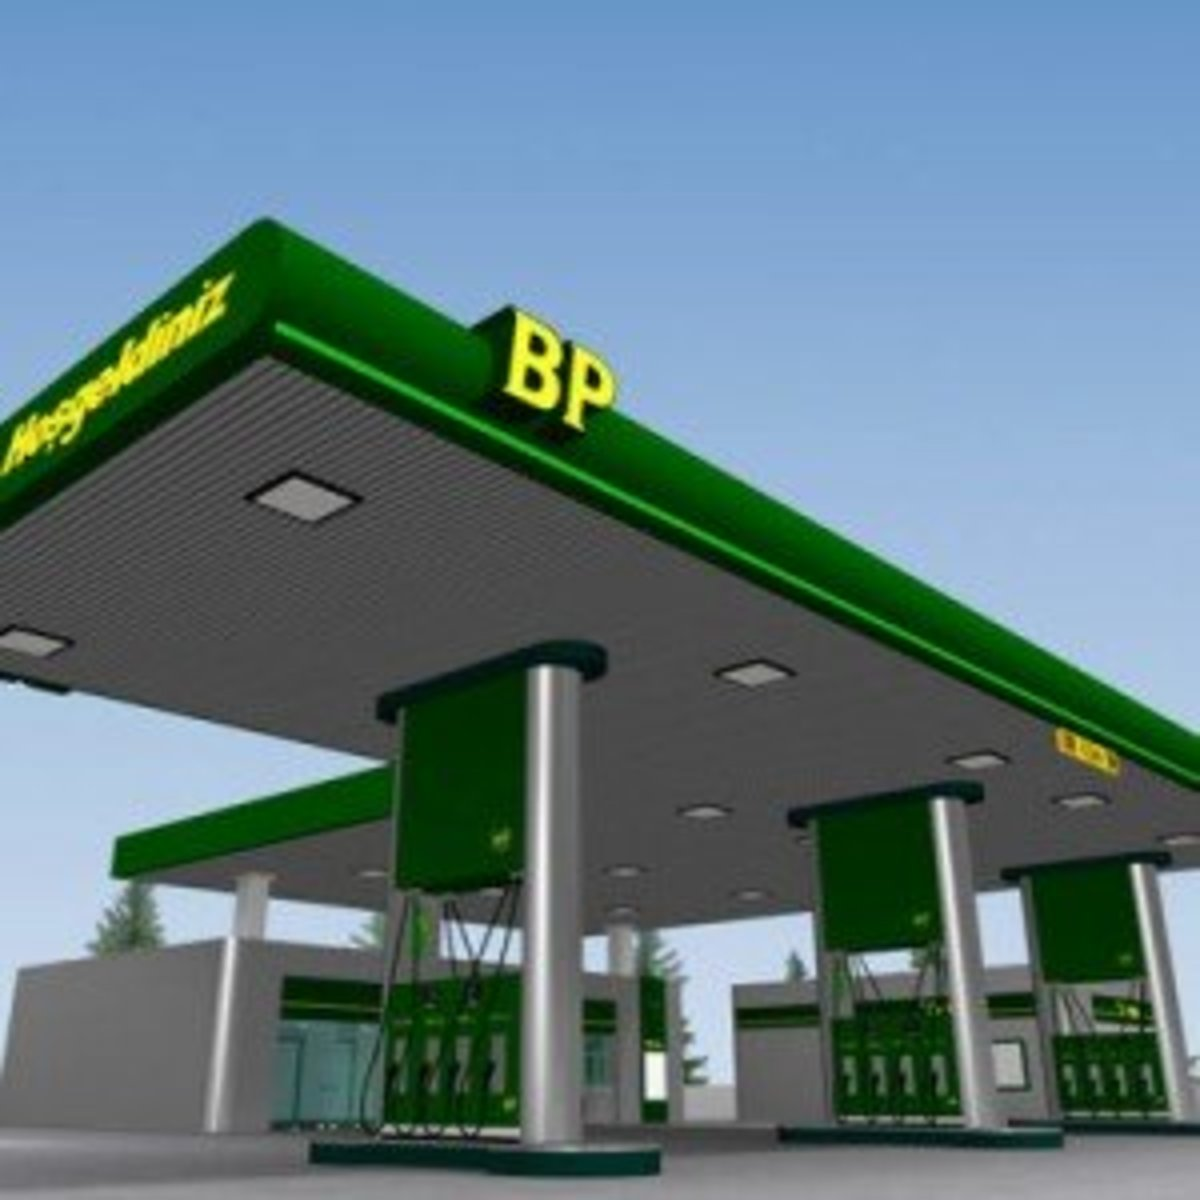 BP - British Petroleum Gasoline